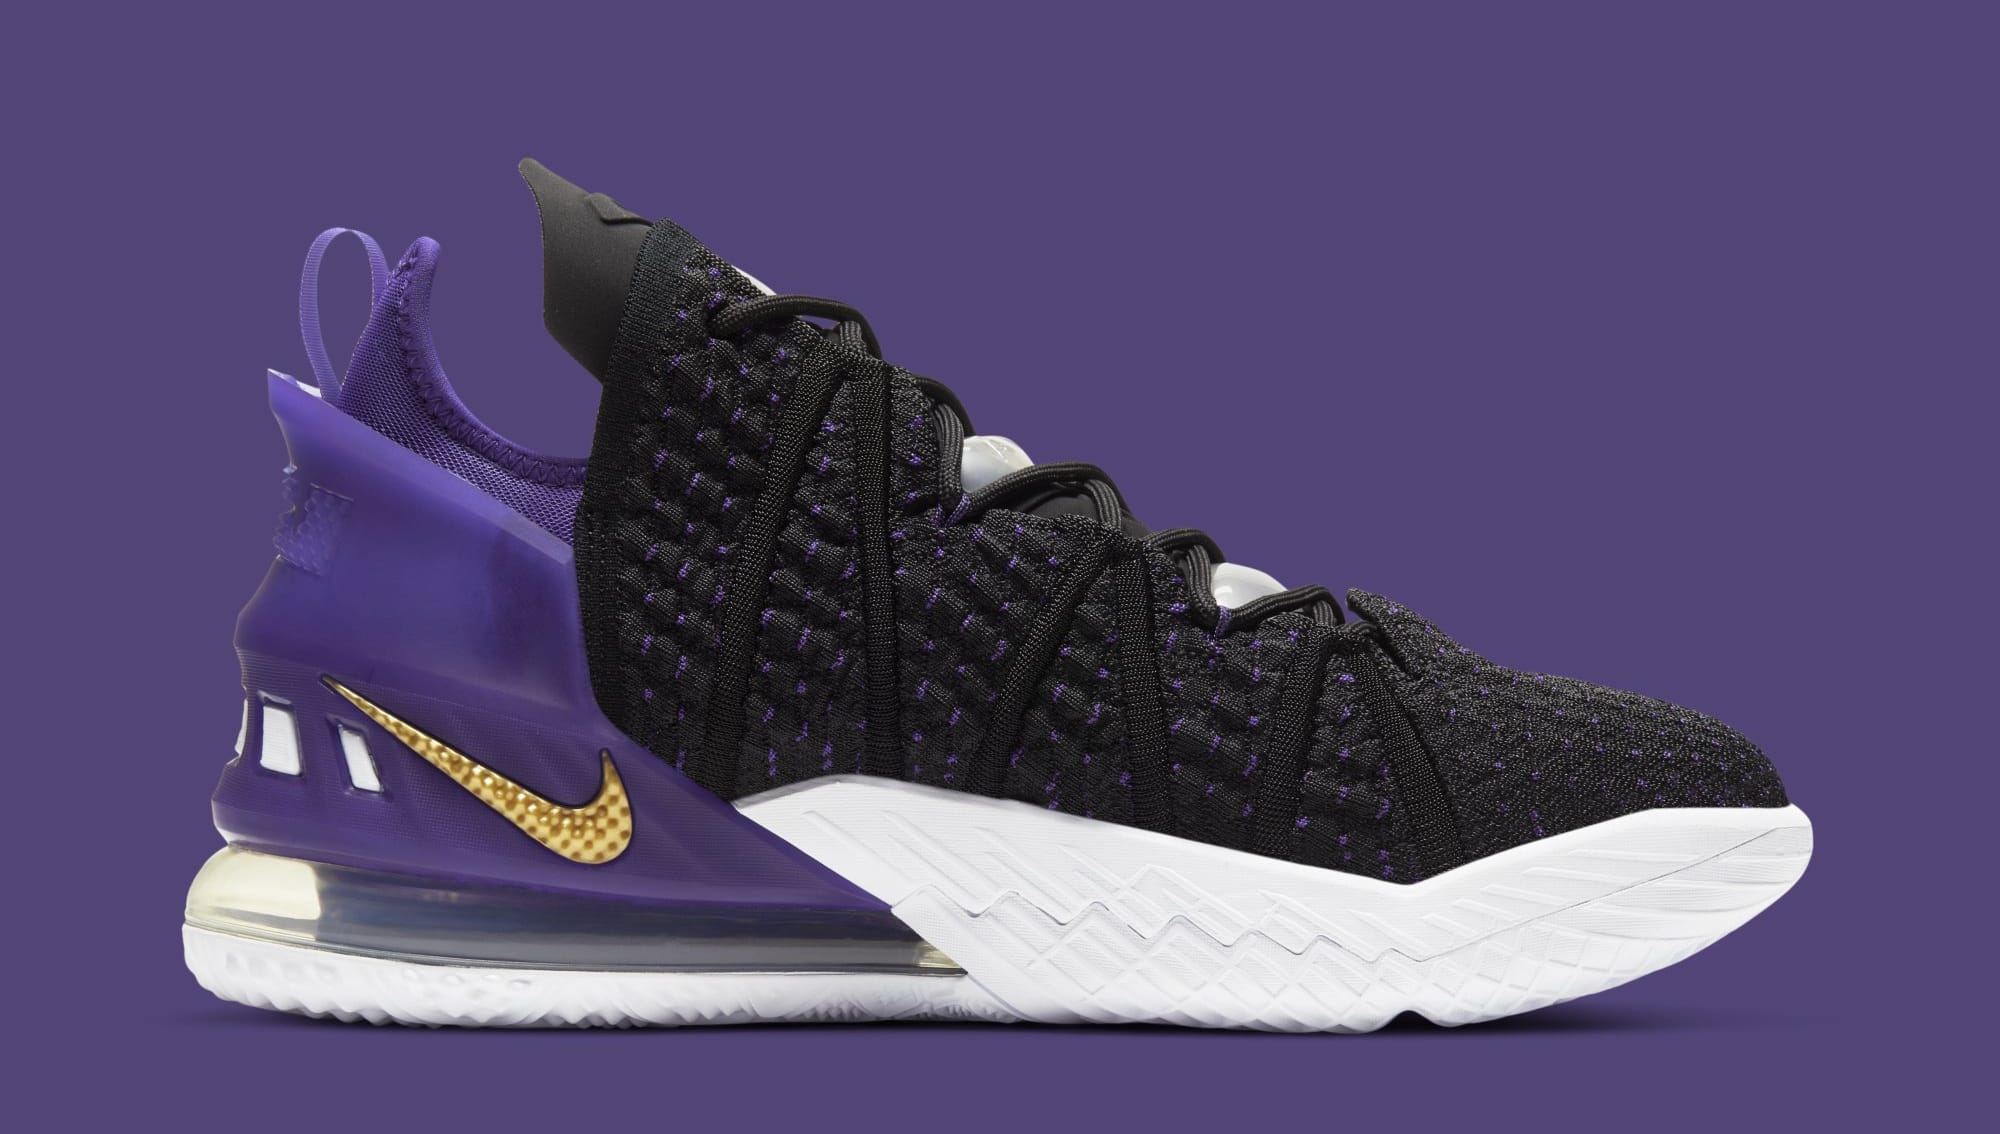 Nike Lebron 18 Lakers Cq9283 004 Release Date Sole Collector